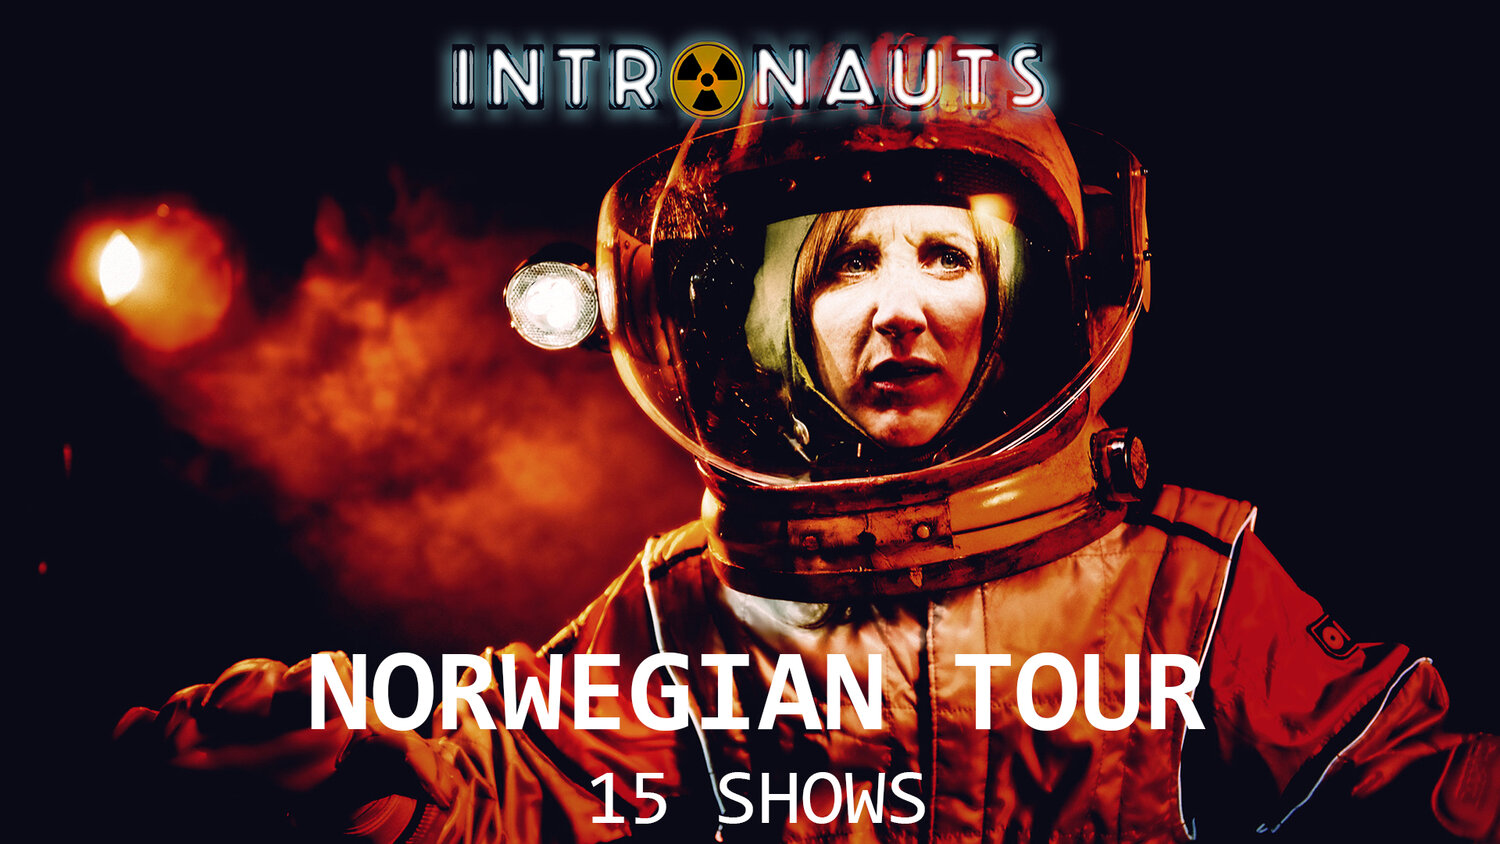 From 13th October - 31st October we are taking   Intronauts   on tour to Norway.